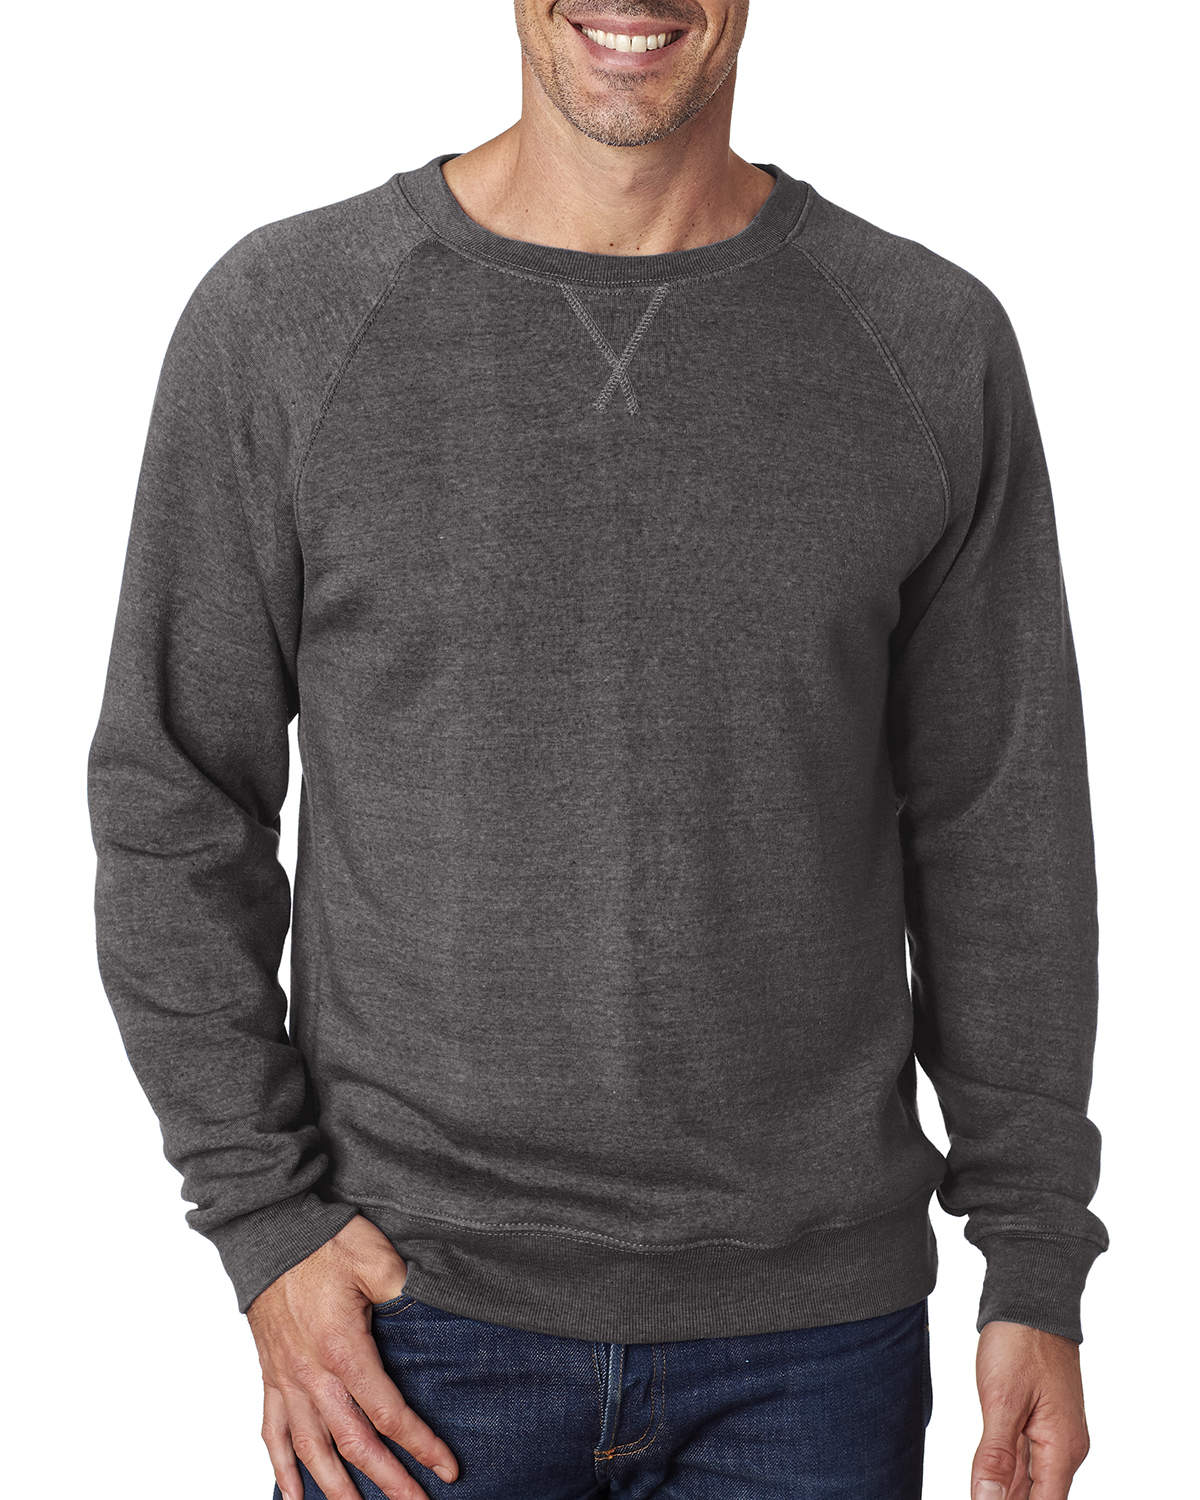 Men's Triblend Fleece Crew